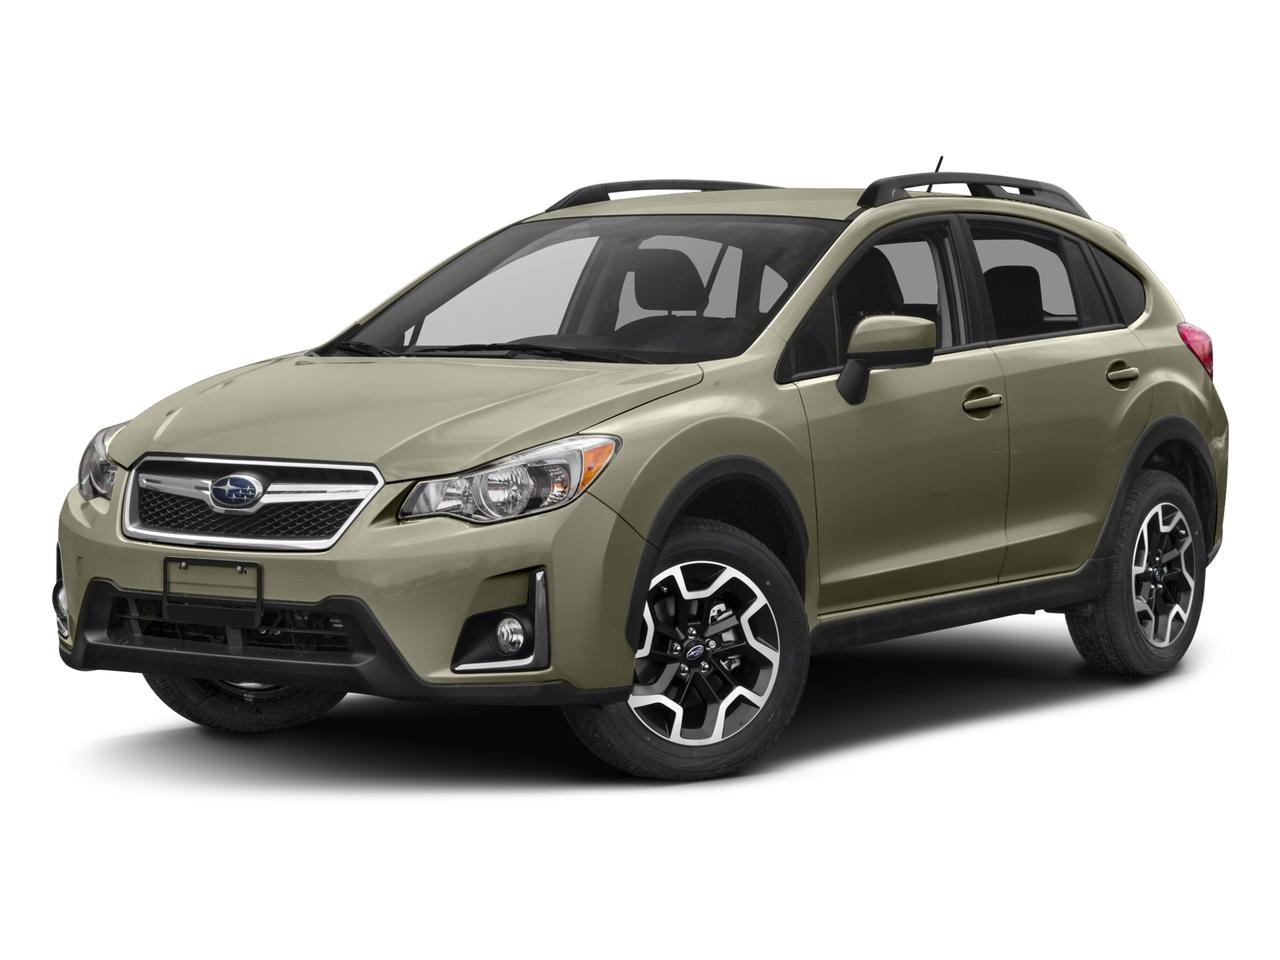 2016 Subaru Crosstrek Vehicle Photo in Pittsburg, CA 94565